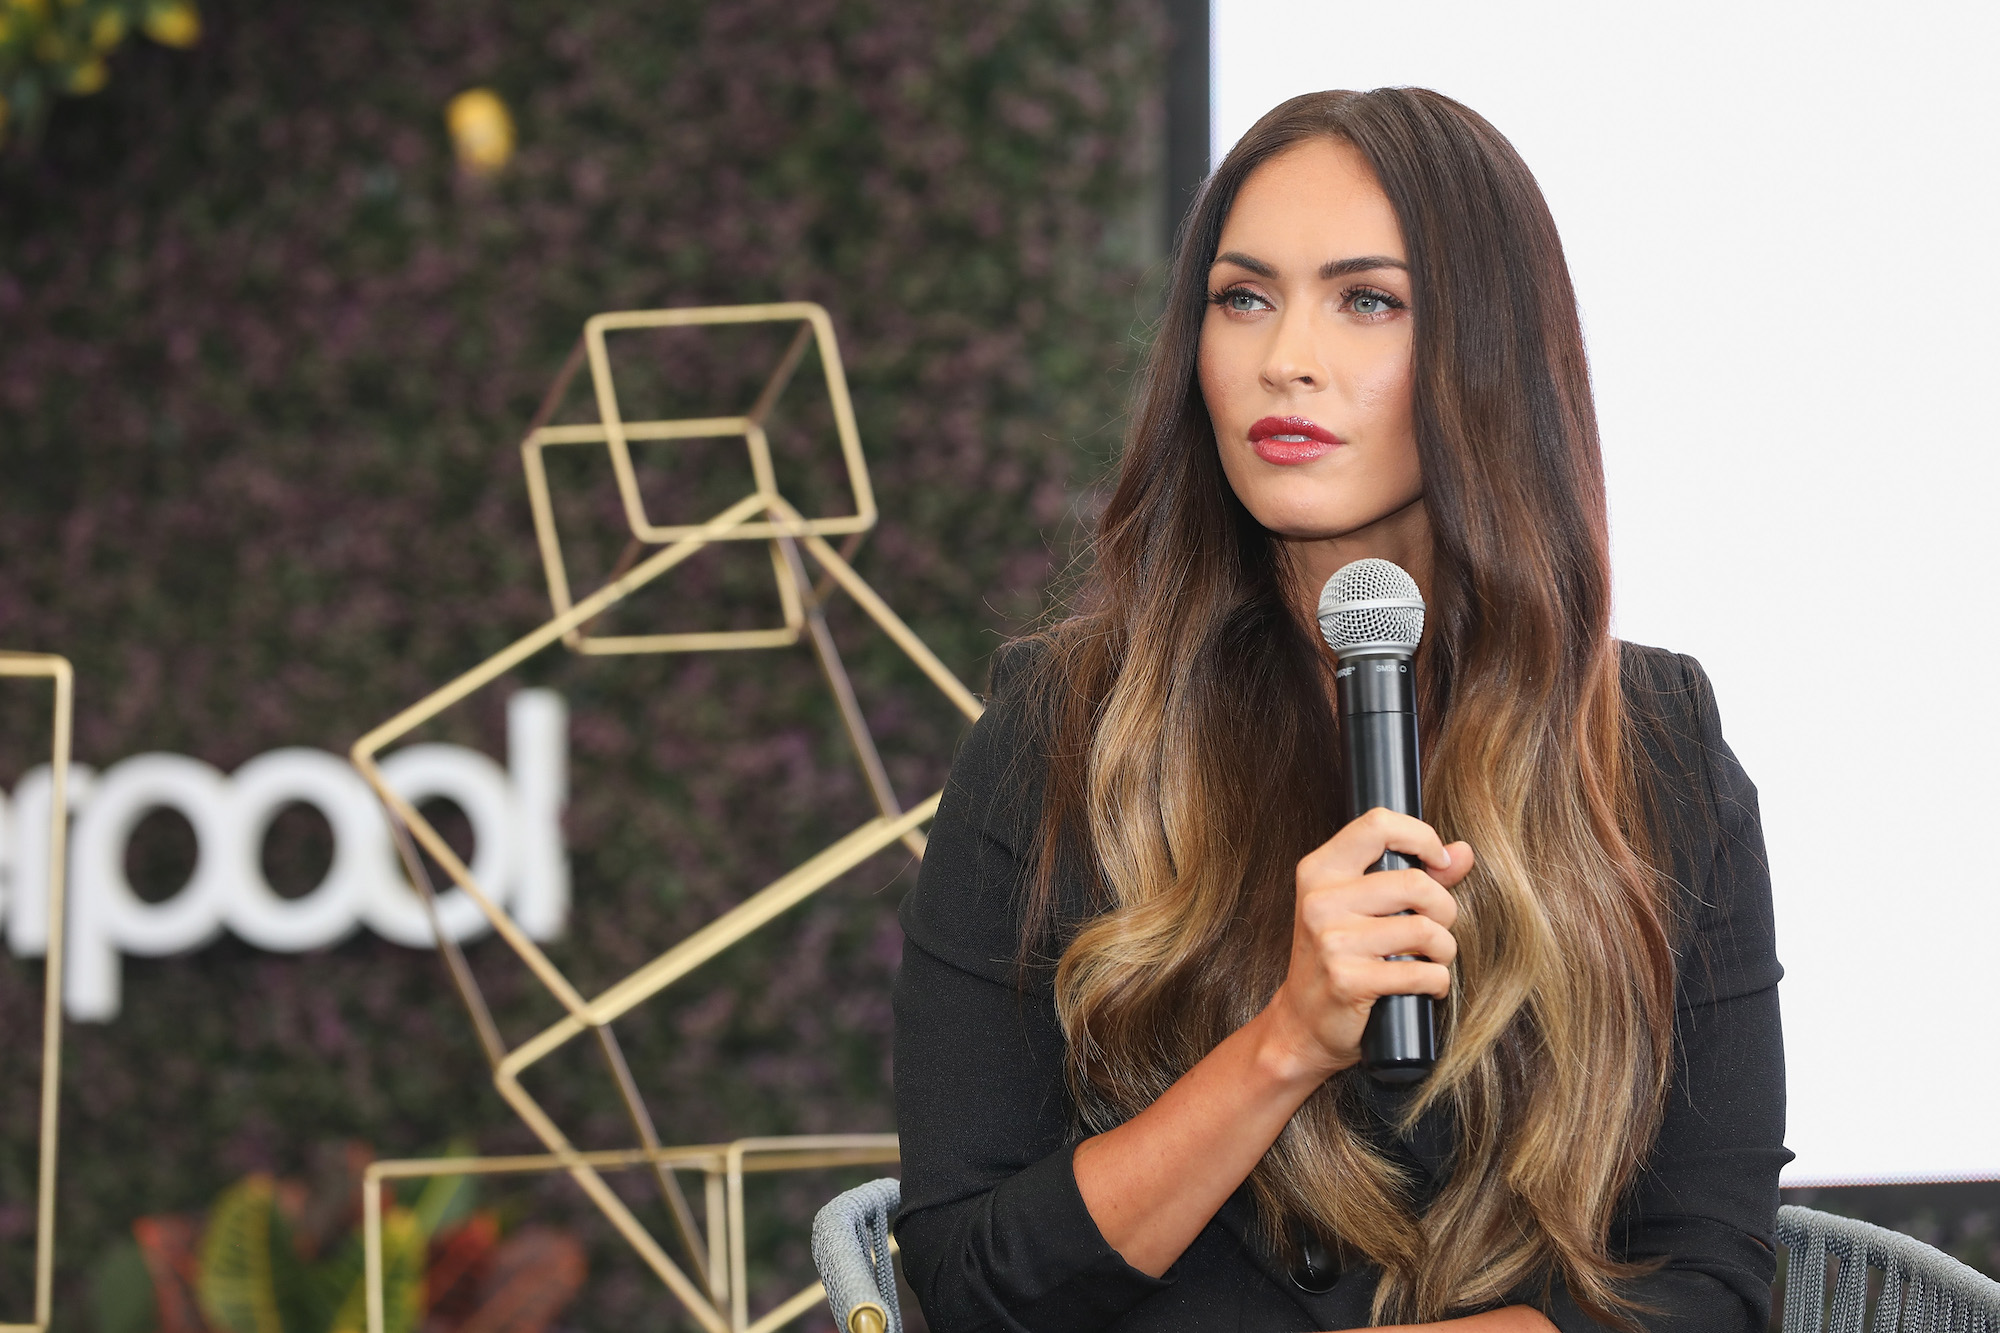 Megan Fox at a press conference at the Liverpool Fashion Festival in autumn / winter 2017 at Liverpool Insurgentes on 6 September 2017.